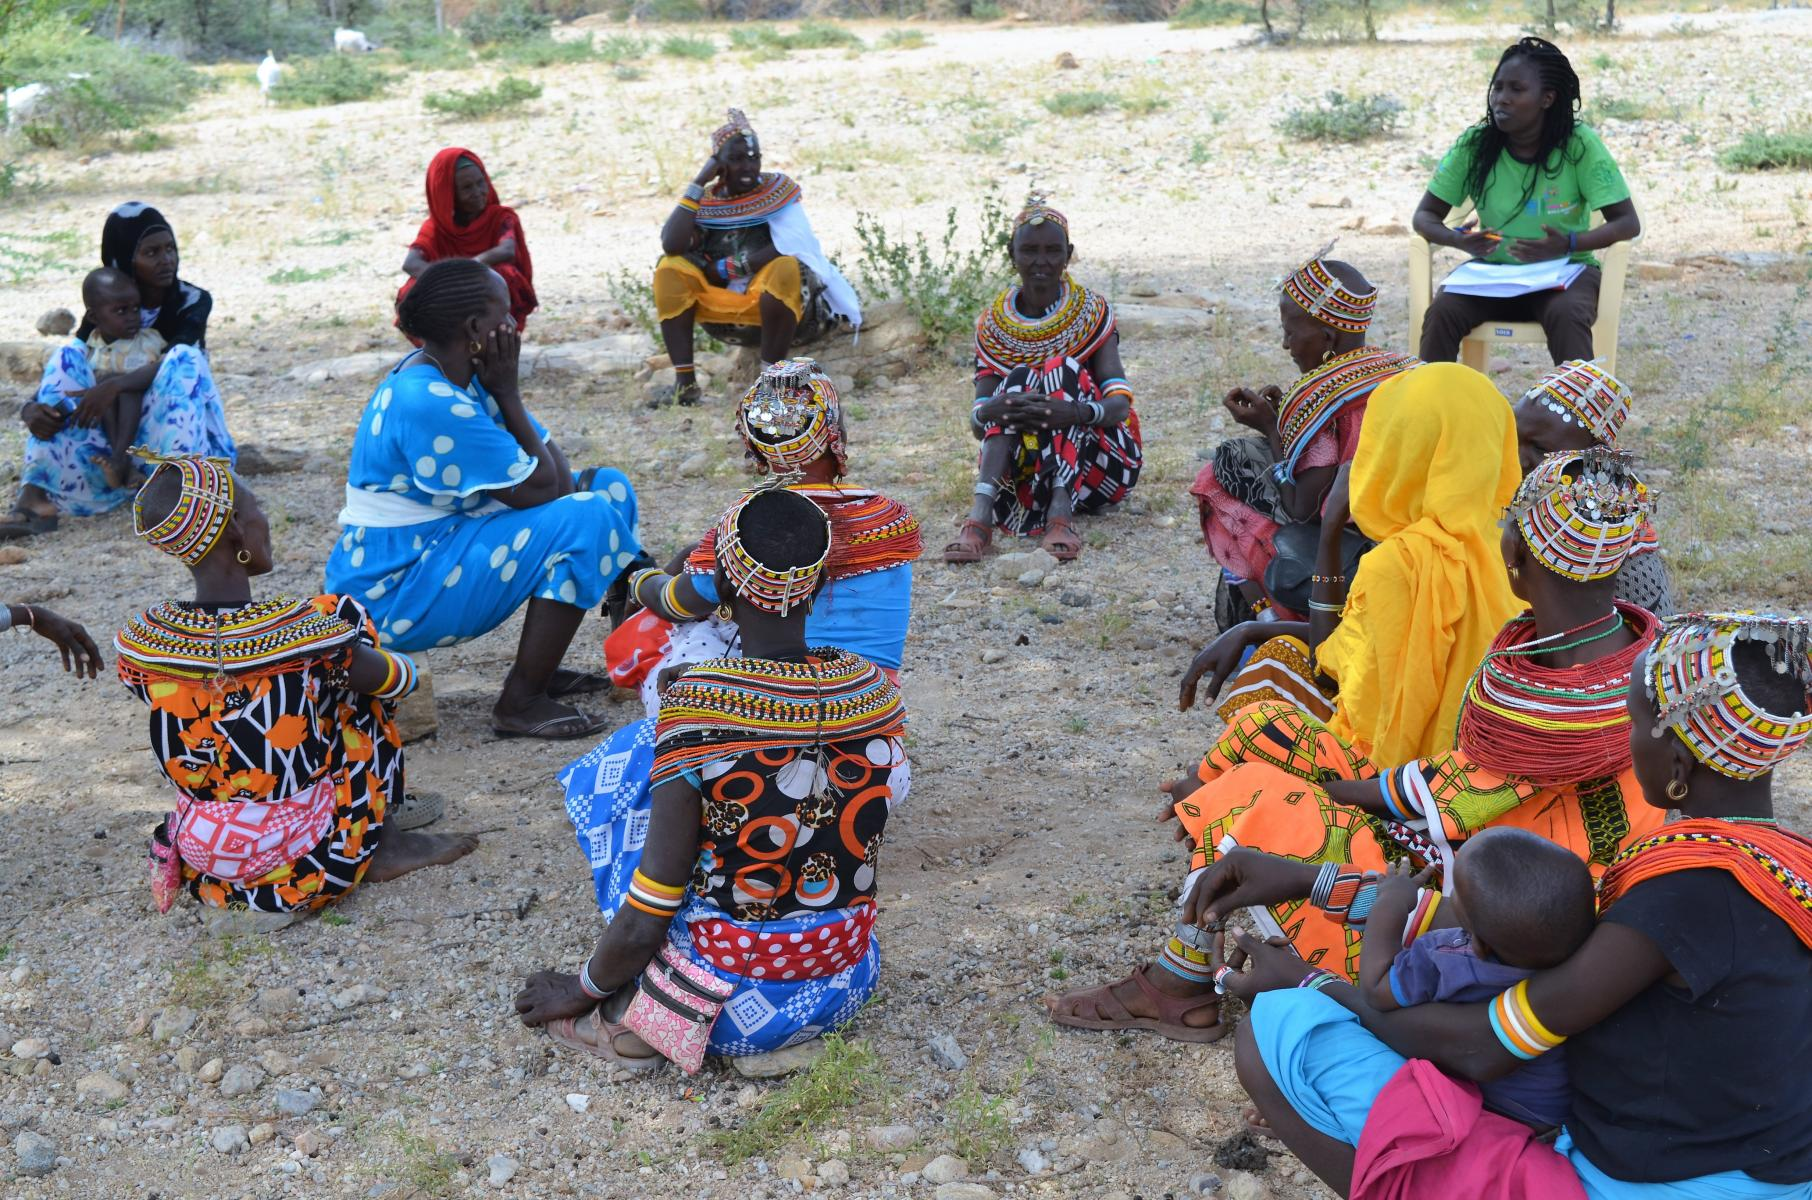 A group of women in colorful dresses sit in a loose circle and engage in discussion with each other.